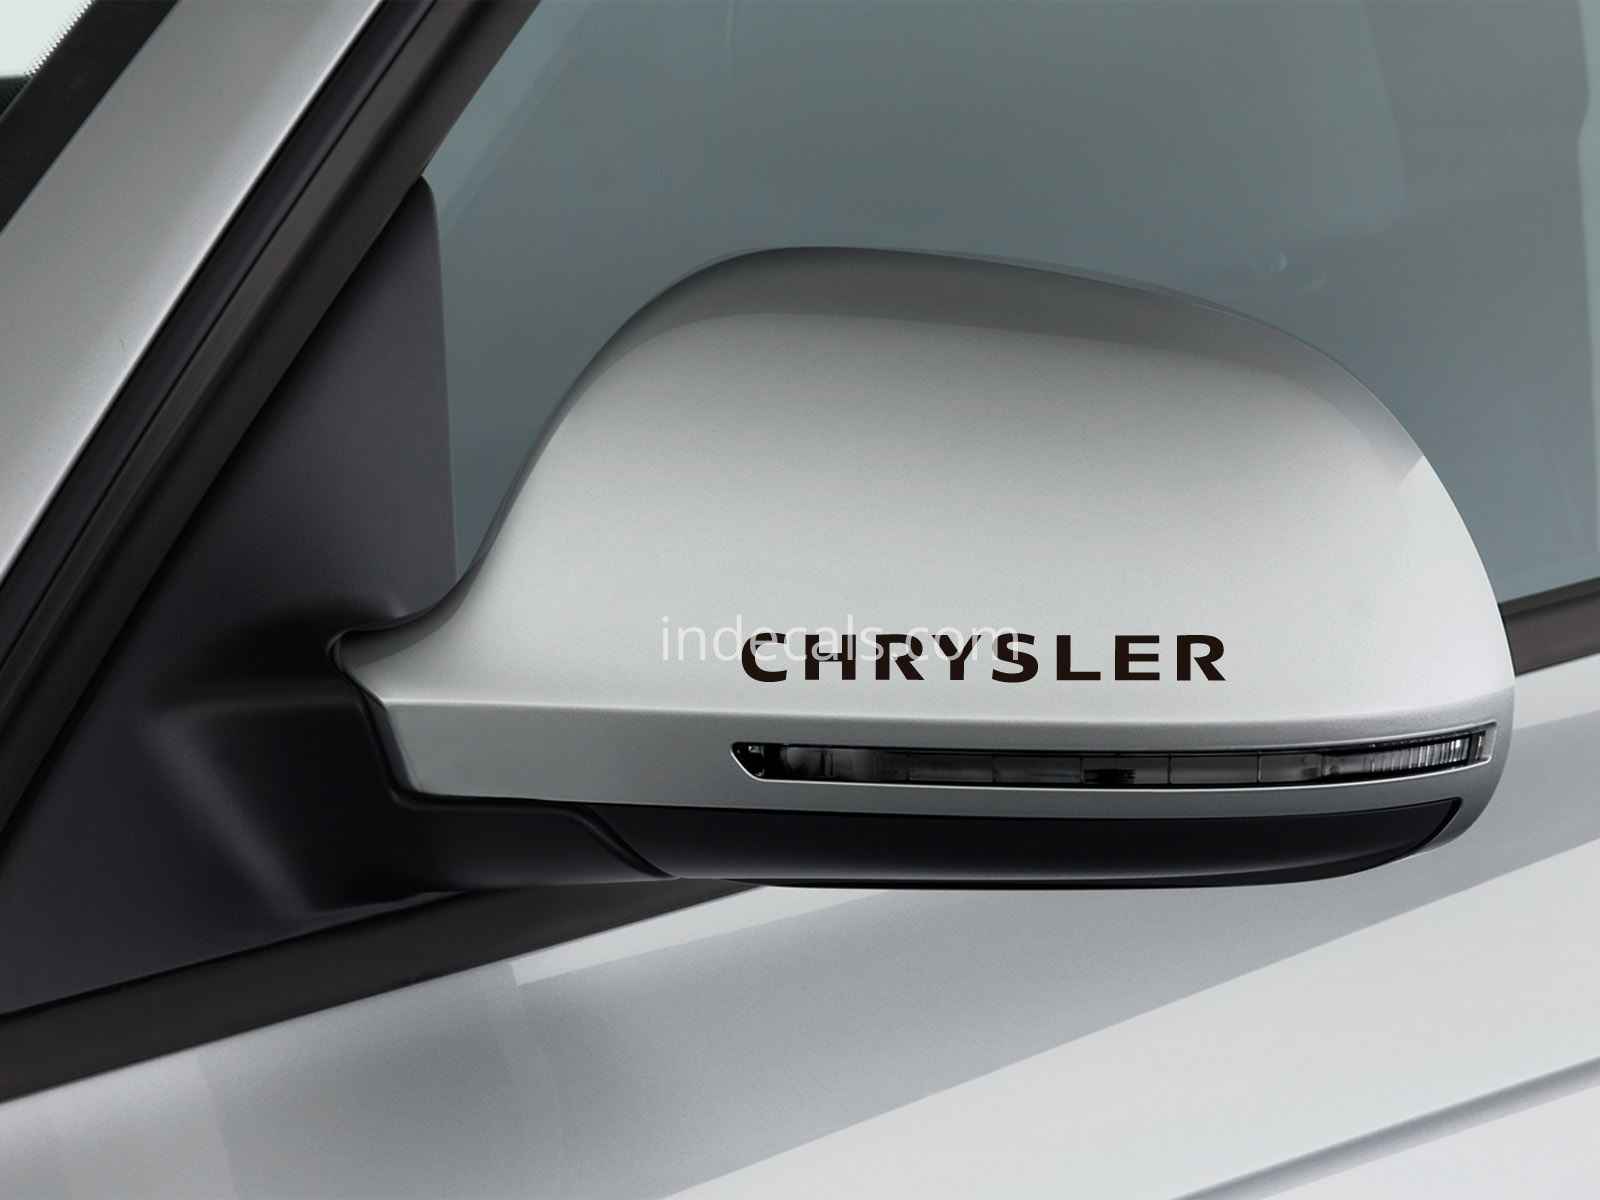 3 x Chrysler Stickers for Mirrors - Black